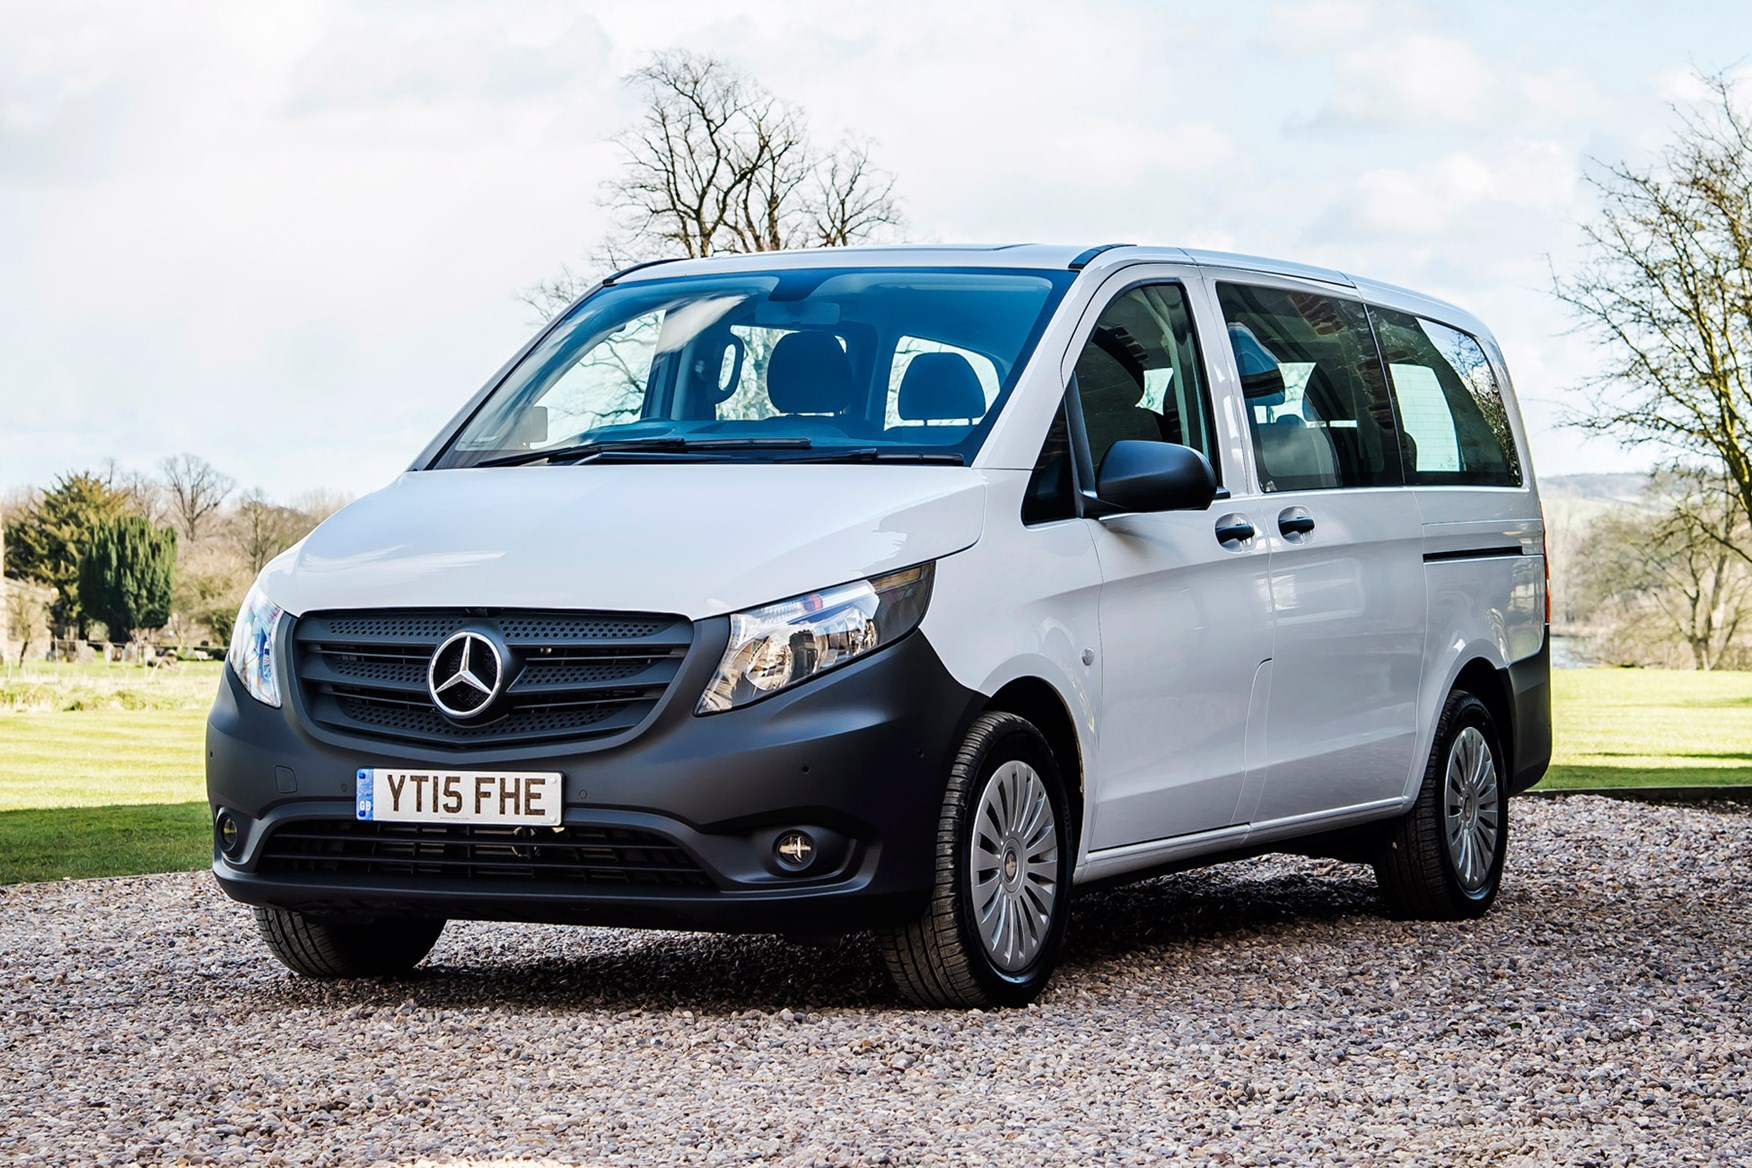 Mercedes-Benz Vito full review on Parkers Vans - front exterior